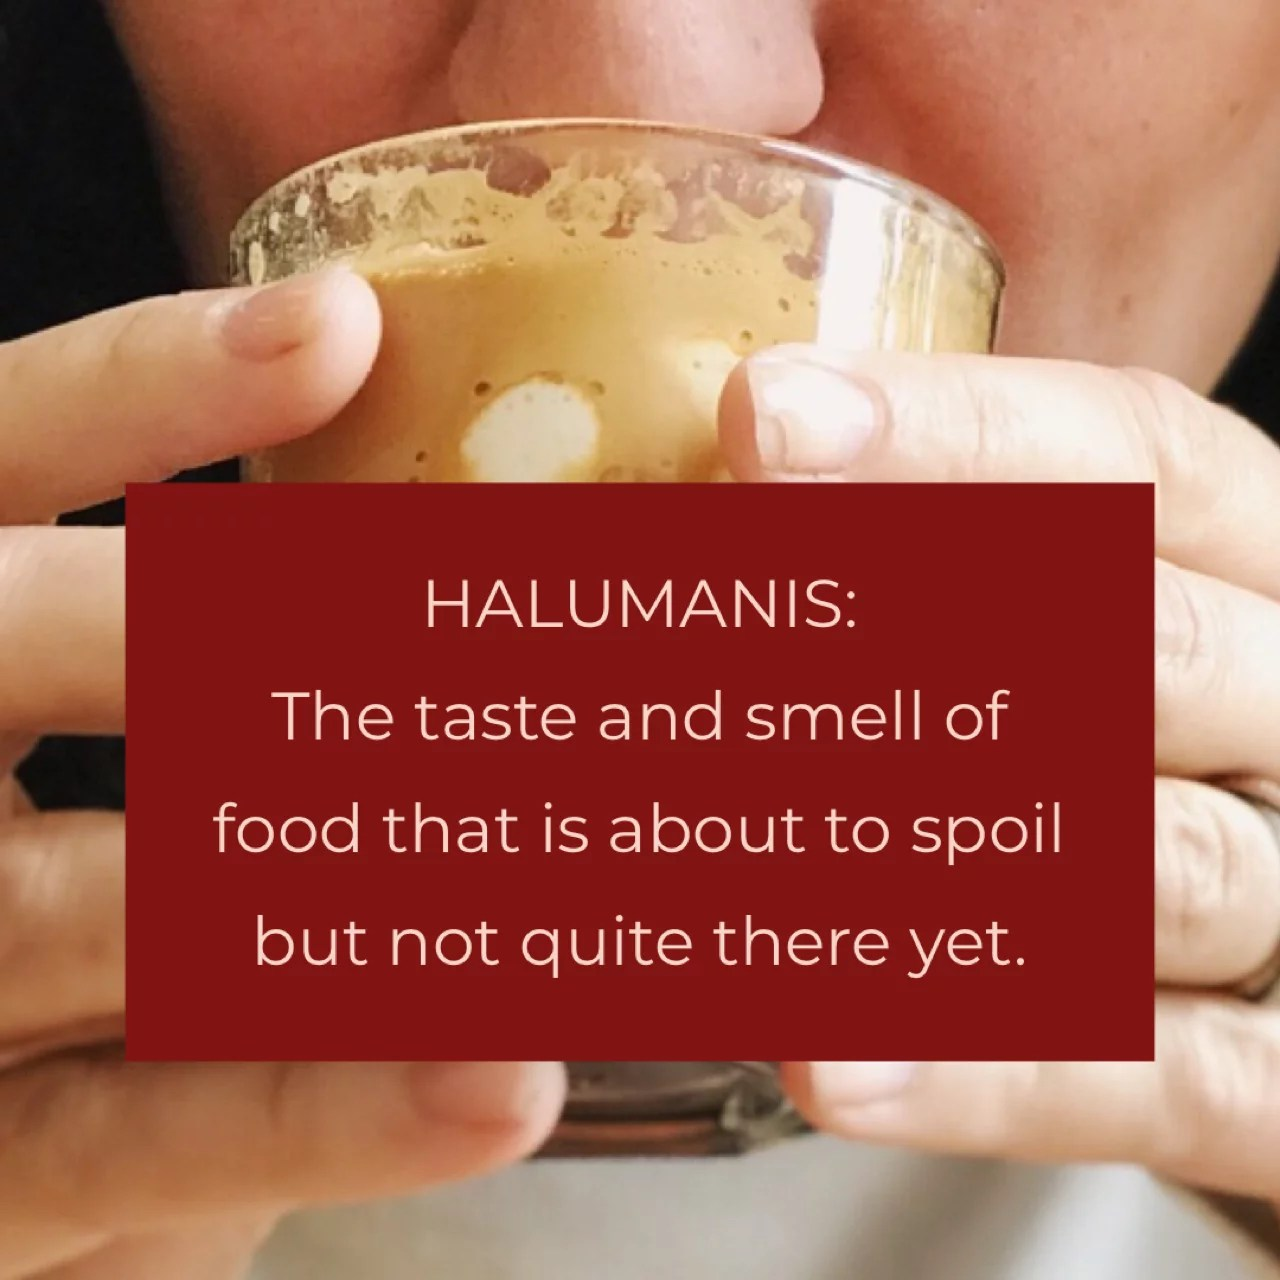 Halumanis: Taste and smell of food that is about to spoil